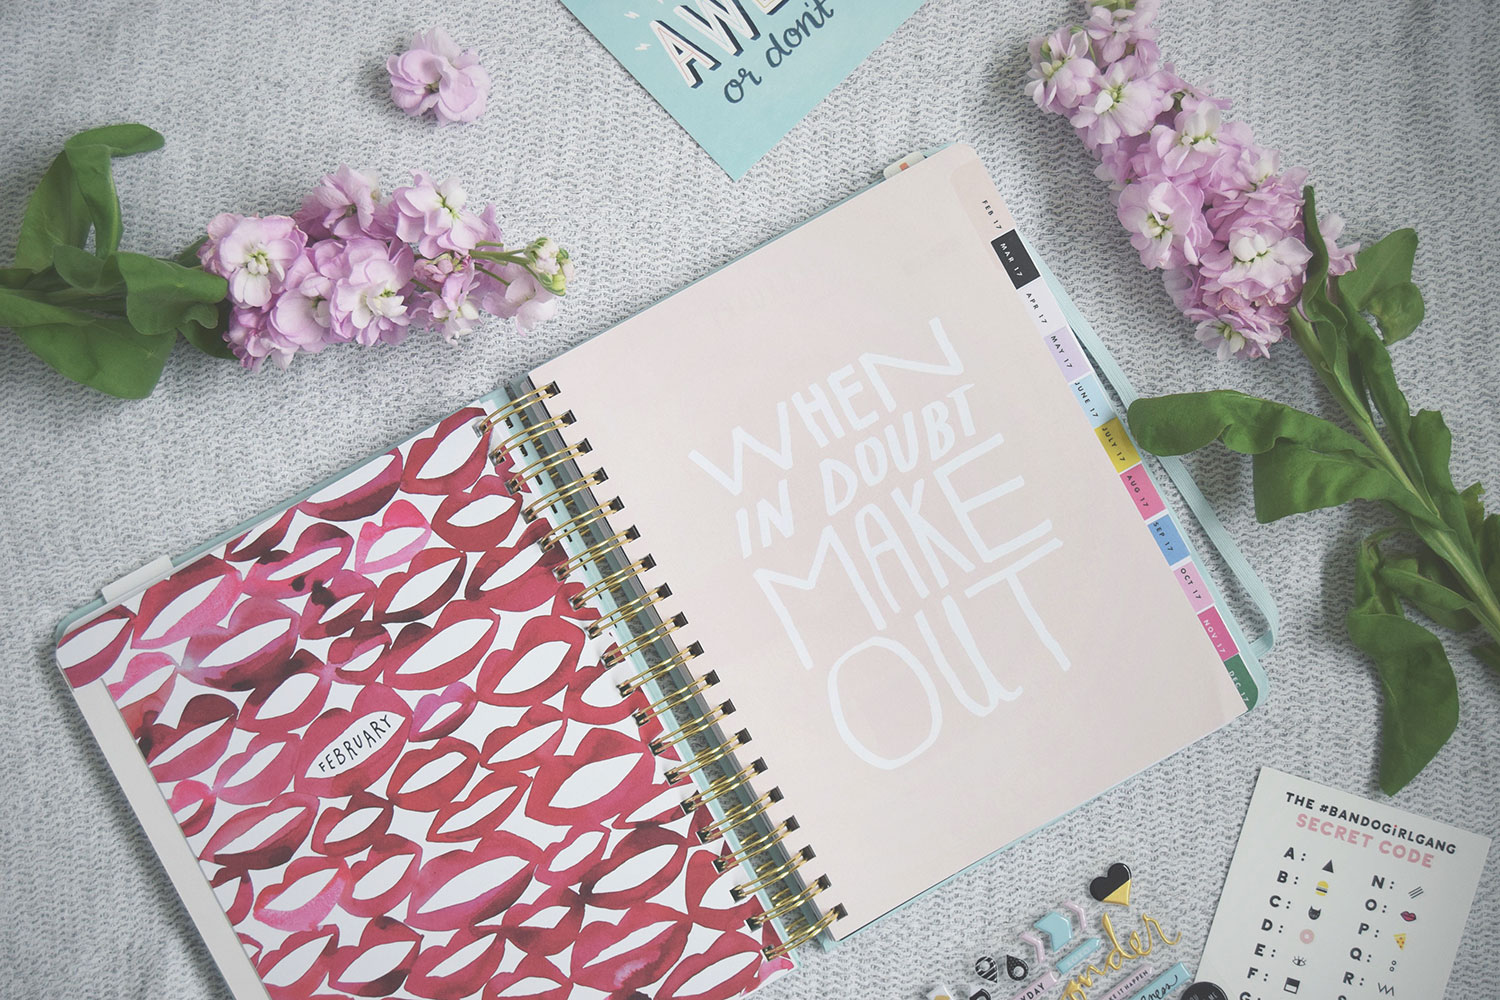 My New Planner; Seriously Adorable Stationery Haul - New 'I am very busy' 2017 Bando planner/organiser/diary from Unwrap Colour and stickers/paperclips from Hey Little Magpie with discount code